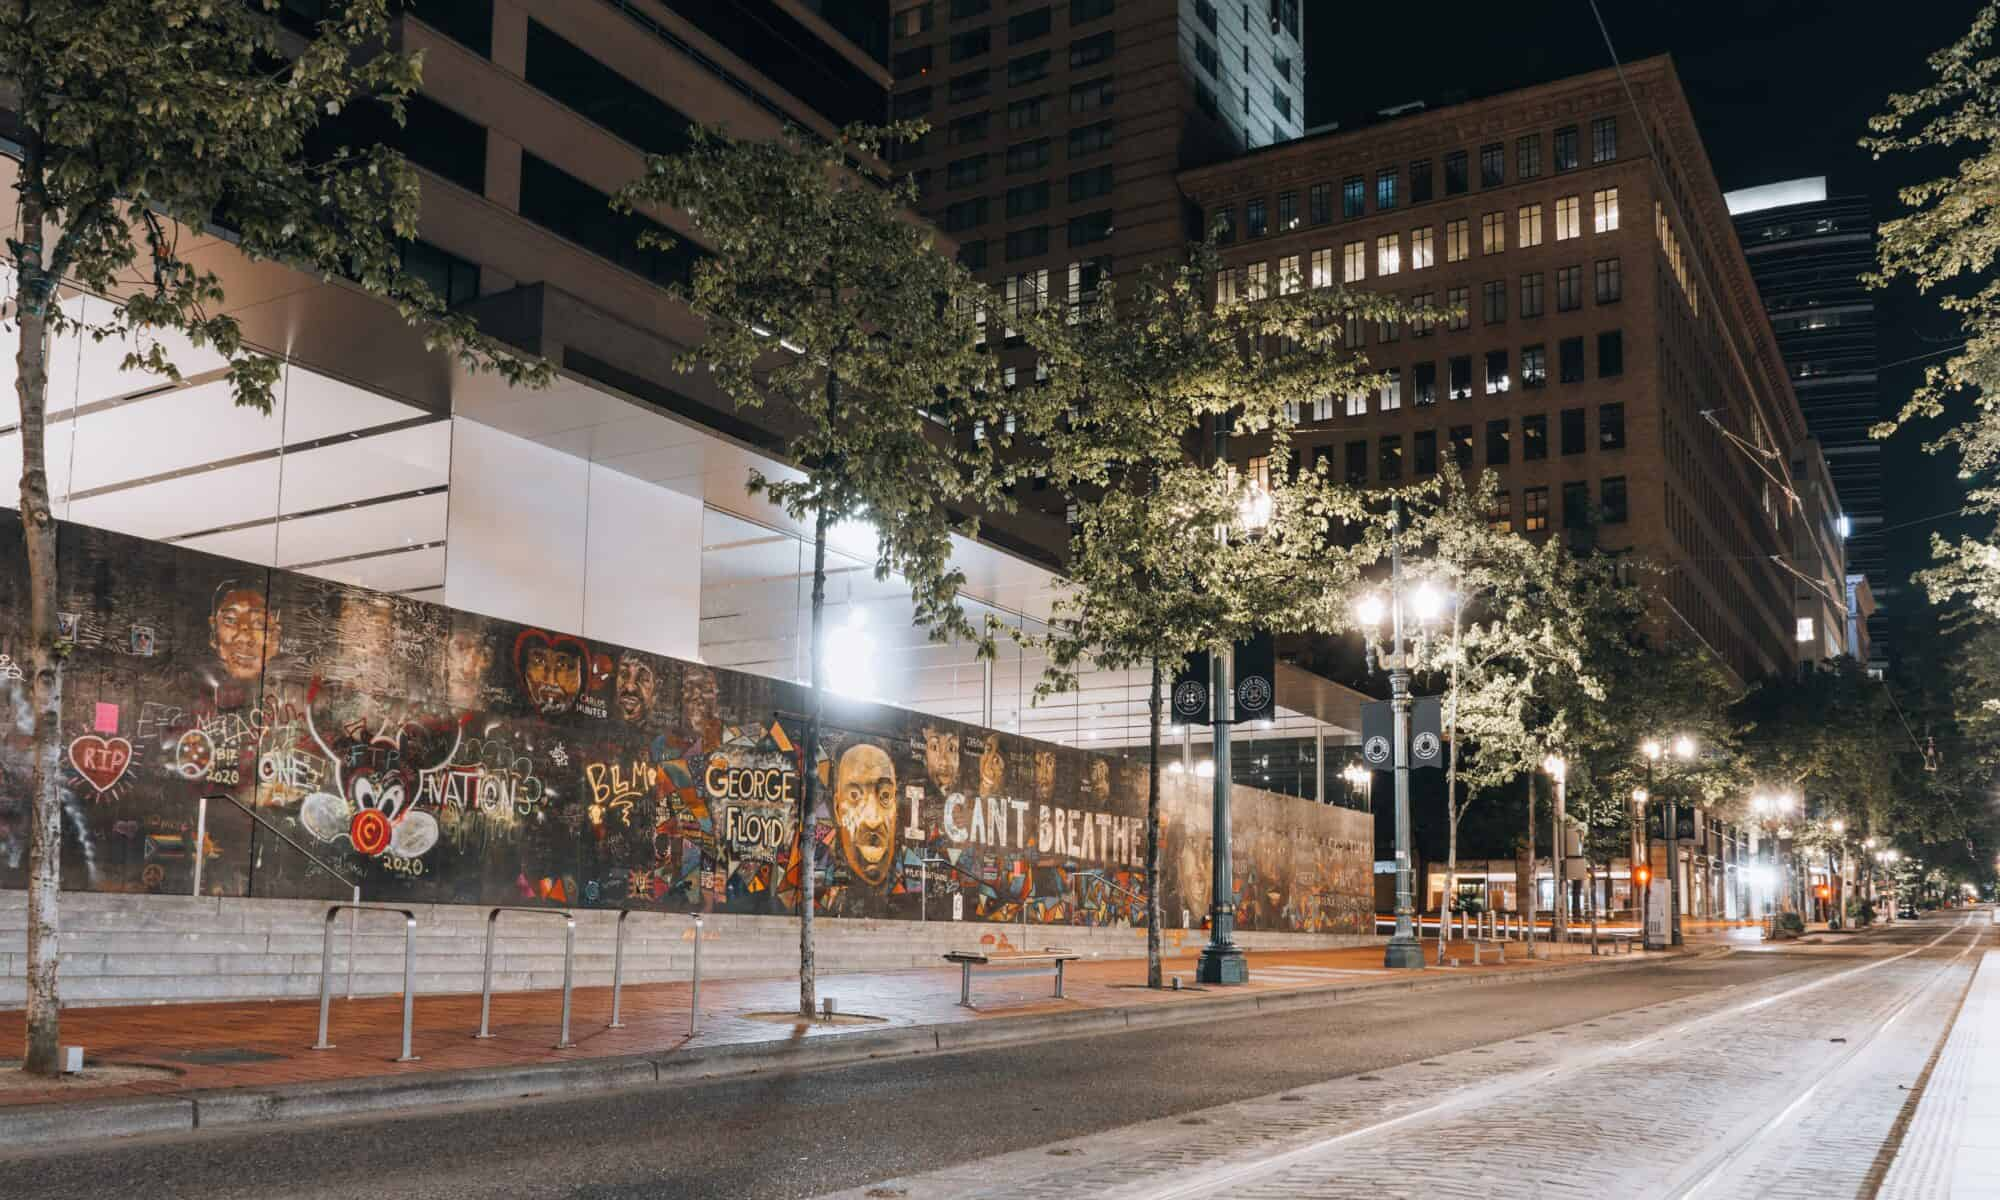 Side view of the Apple Store decorated by various BLM Activists to honor George Floyd, who was murdered by the police in late May of 2020